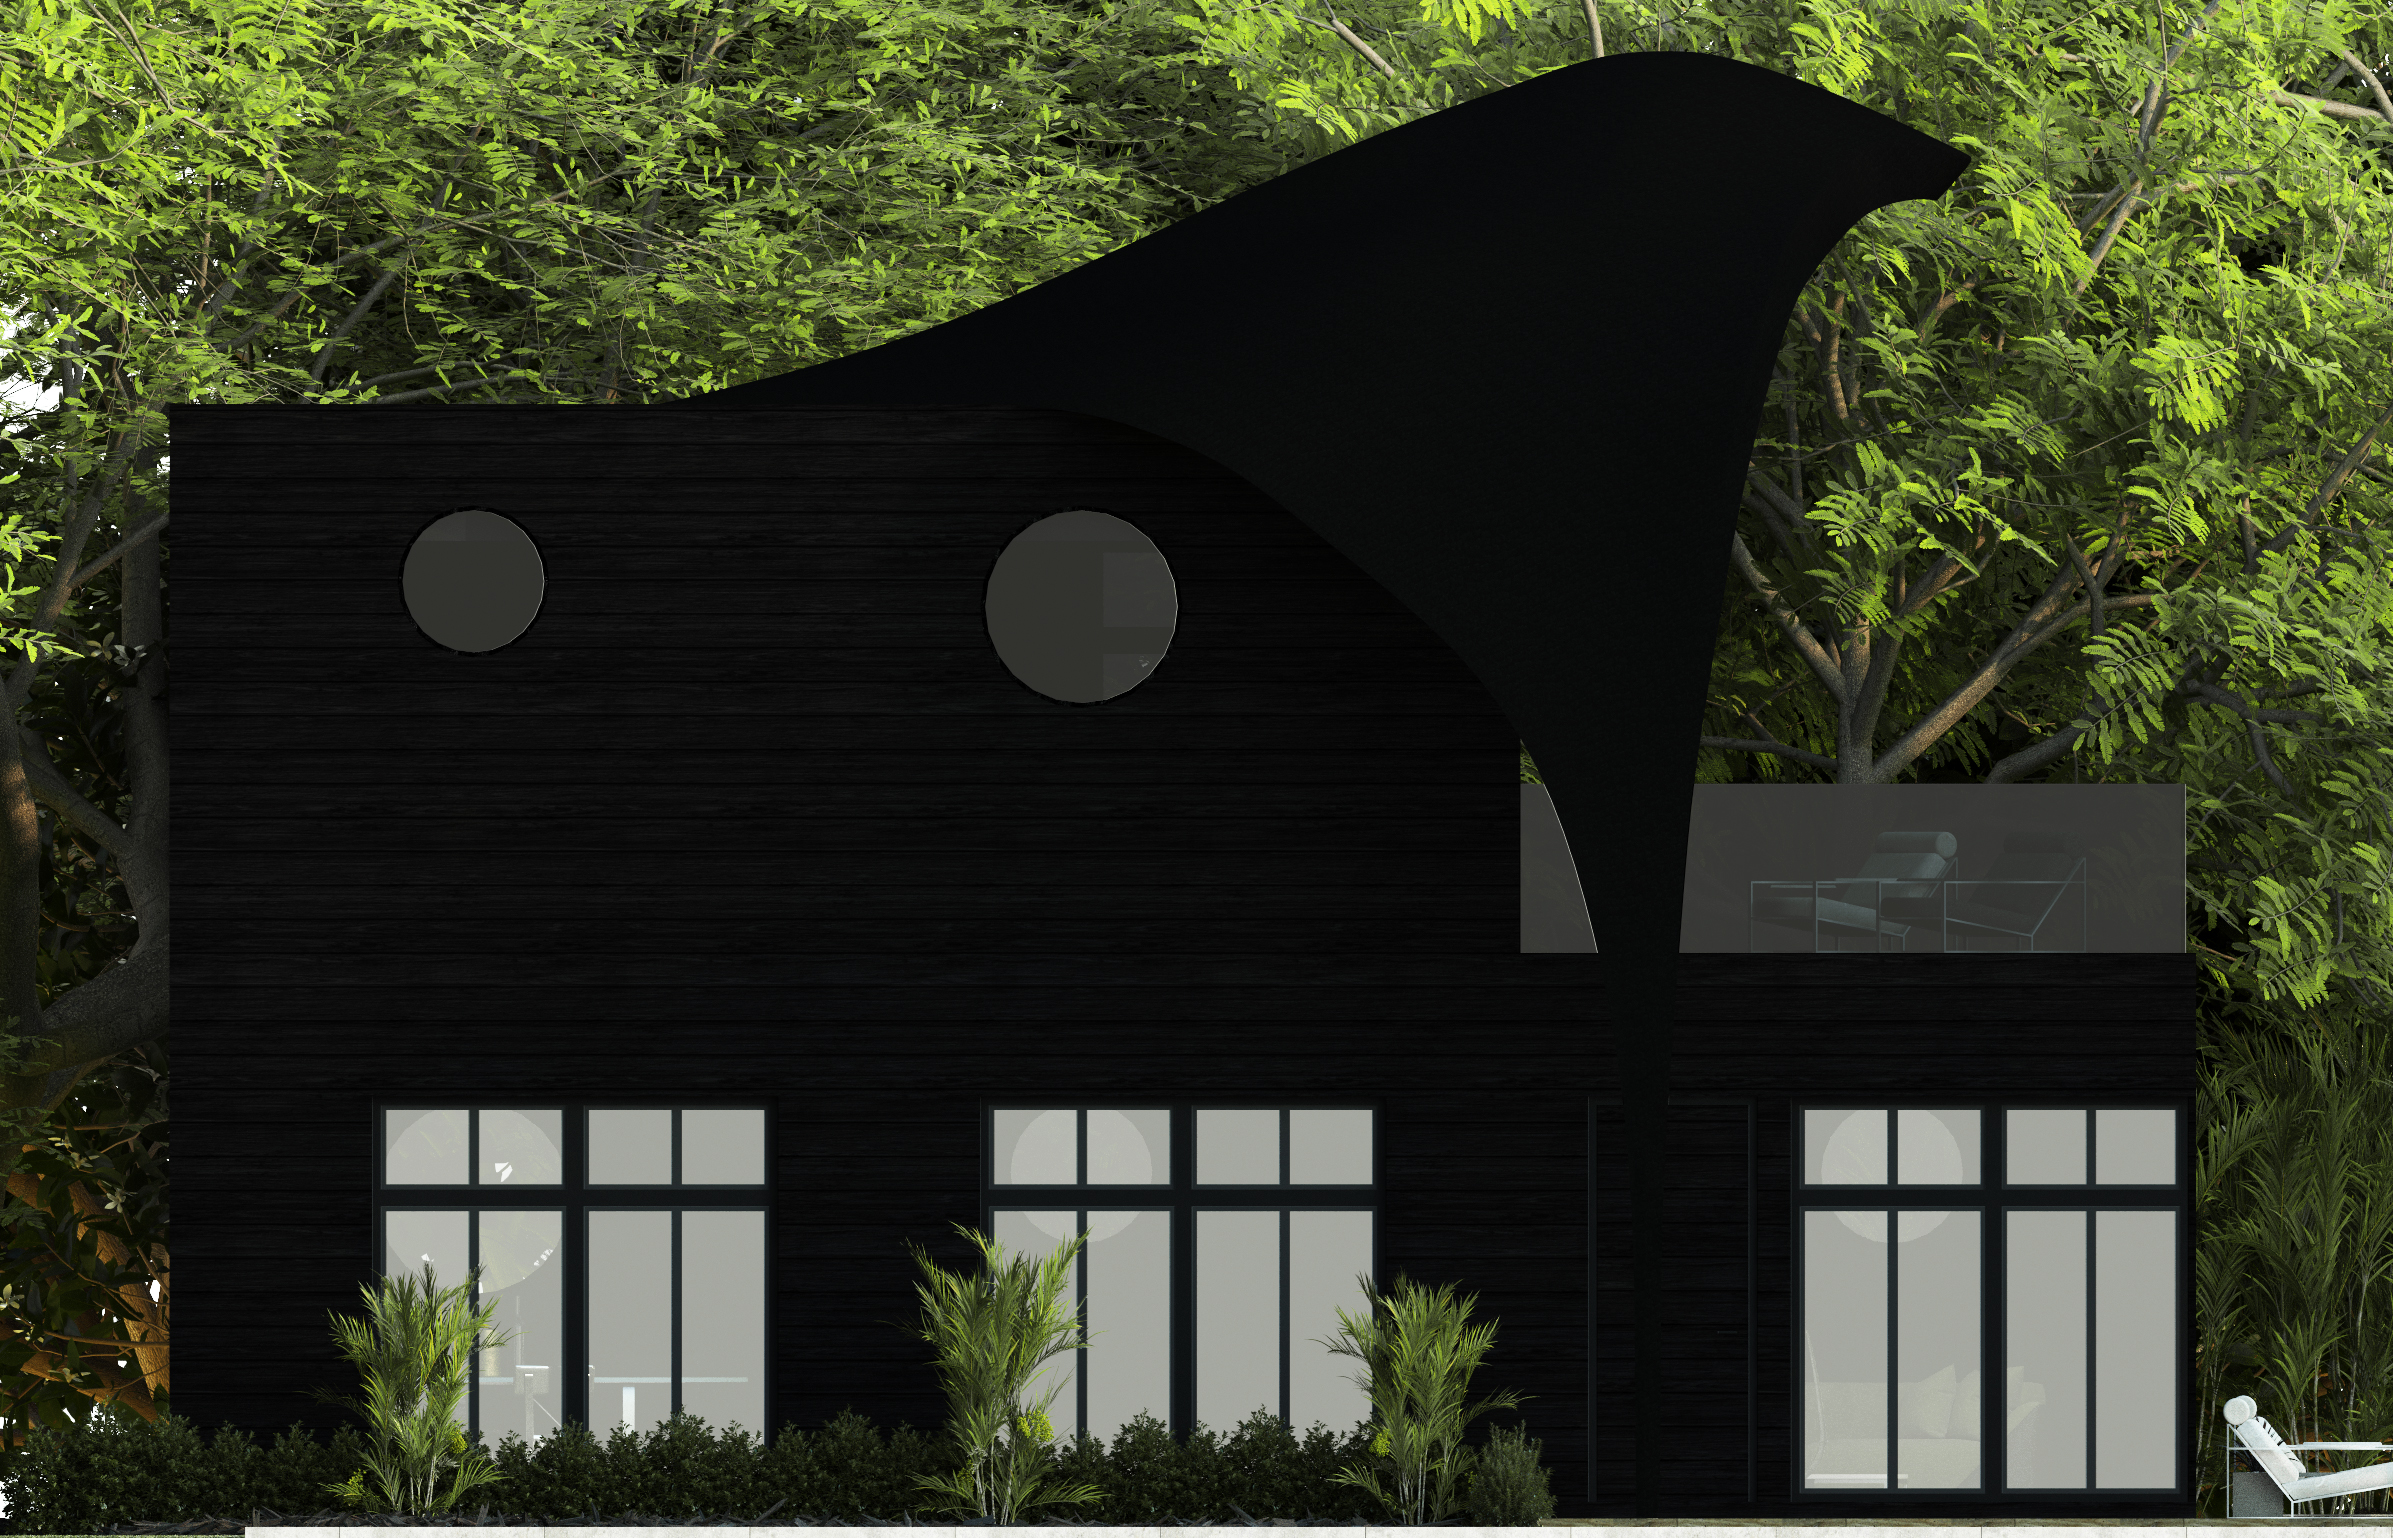 A rendering of the swallow-inspired cabin home designed by Camilla Staerk and Helena Christensen.